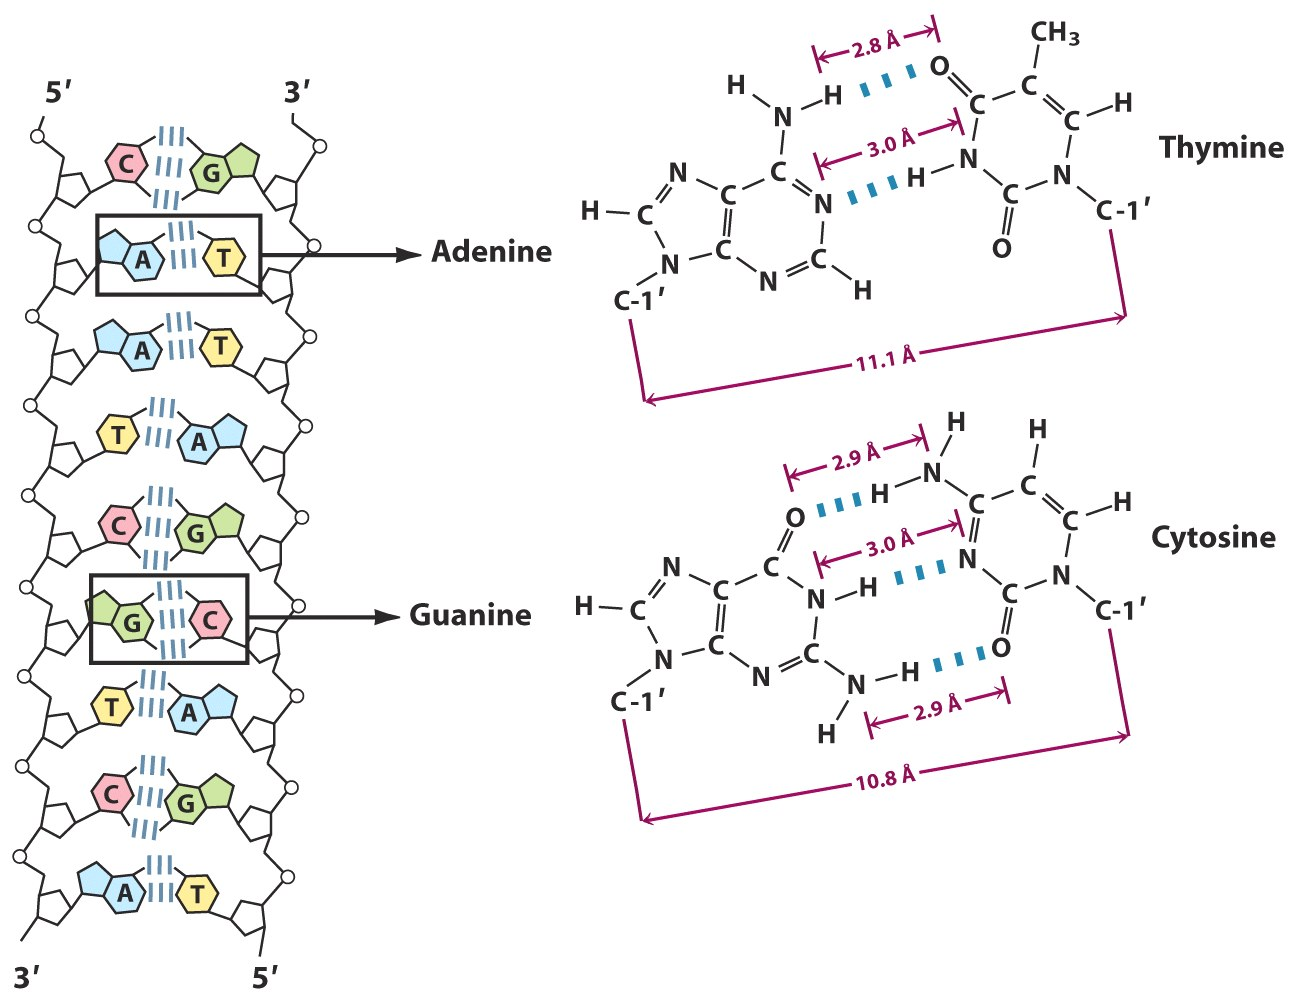 Base Pairing In Dna And Hydrogen Bonding